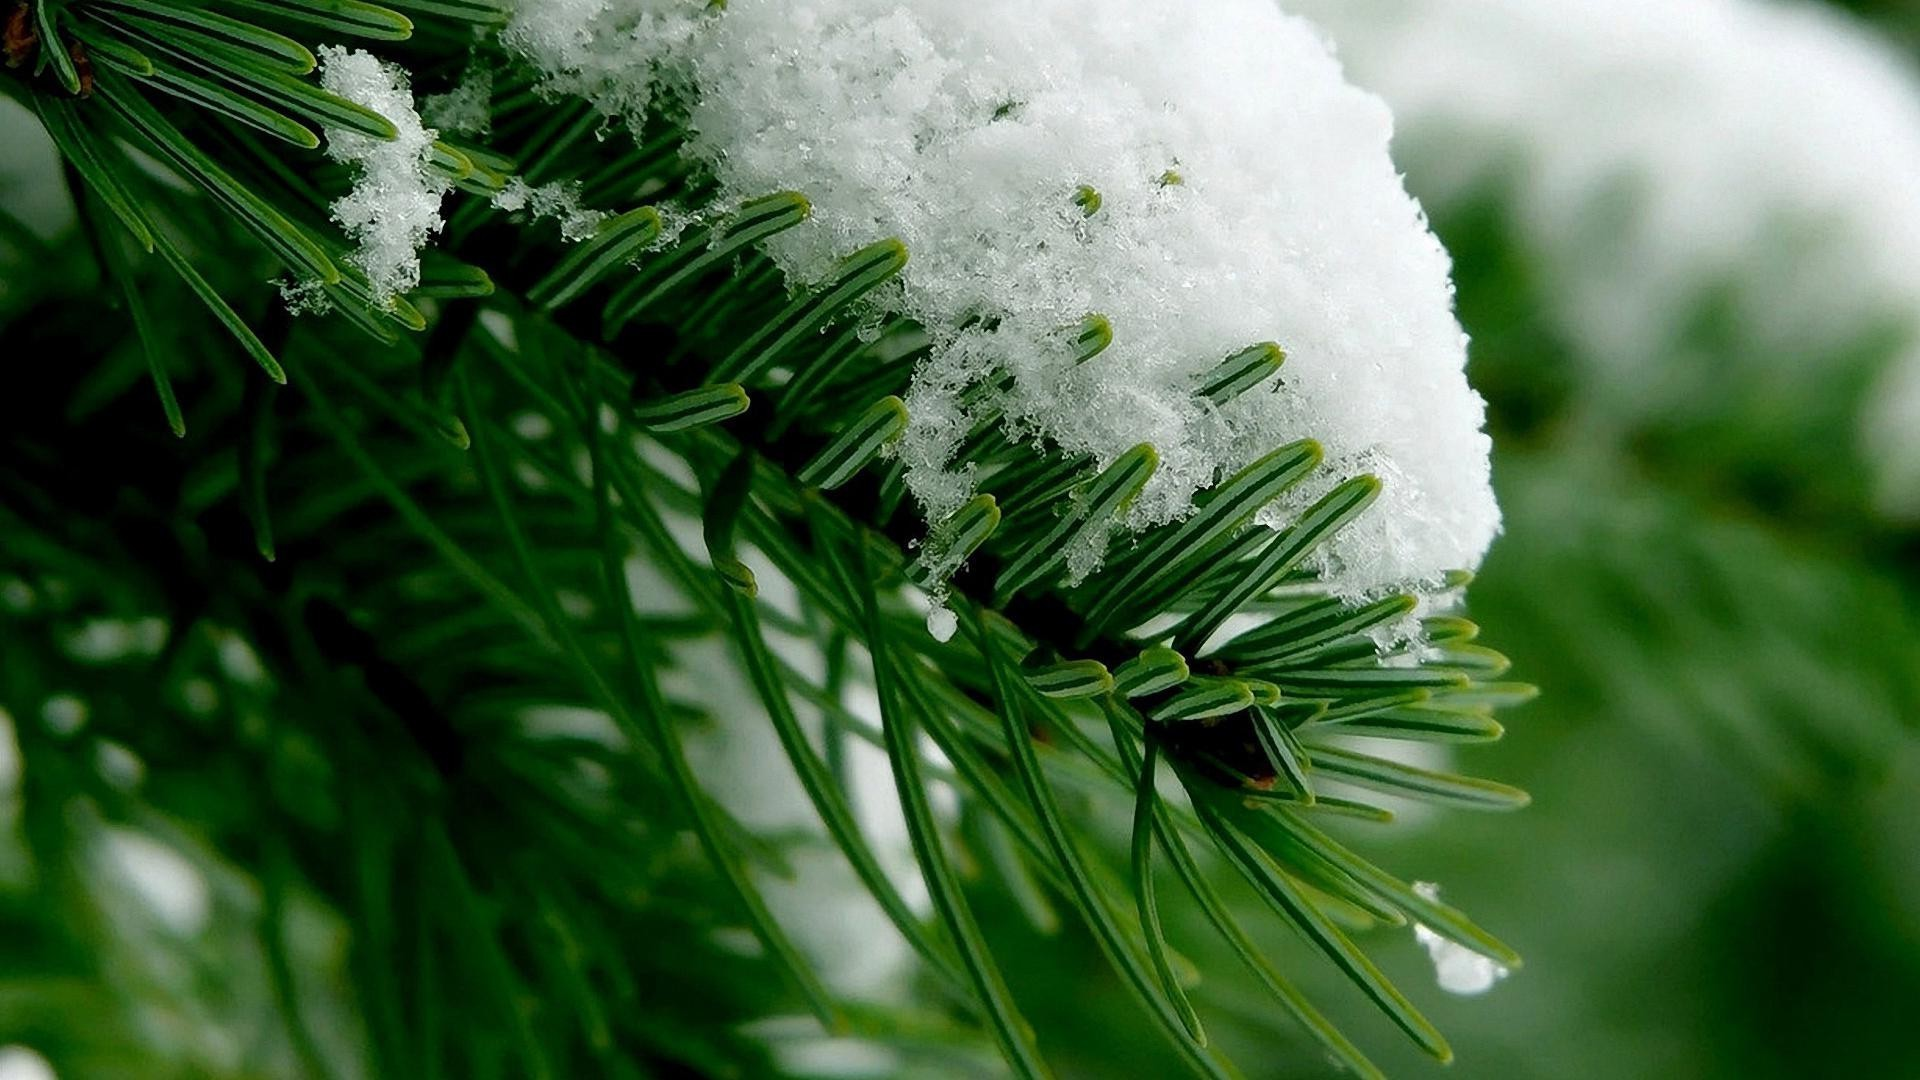 plants winter christmas tree evergreen blur celebration season nature decoration snow pine leaf bright needle close-up light outdoors conifer flora